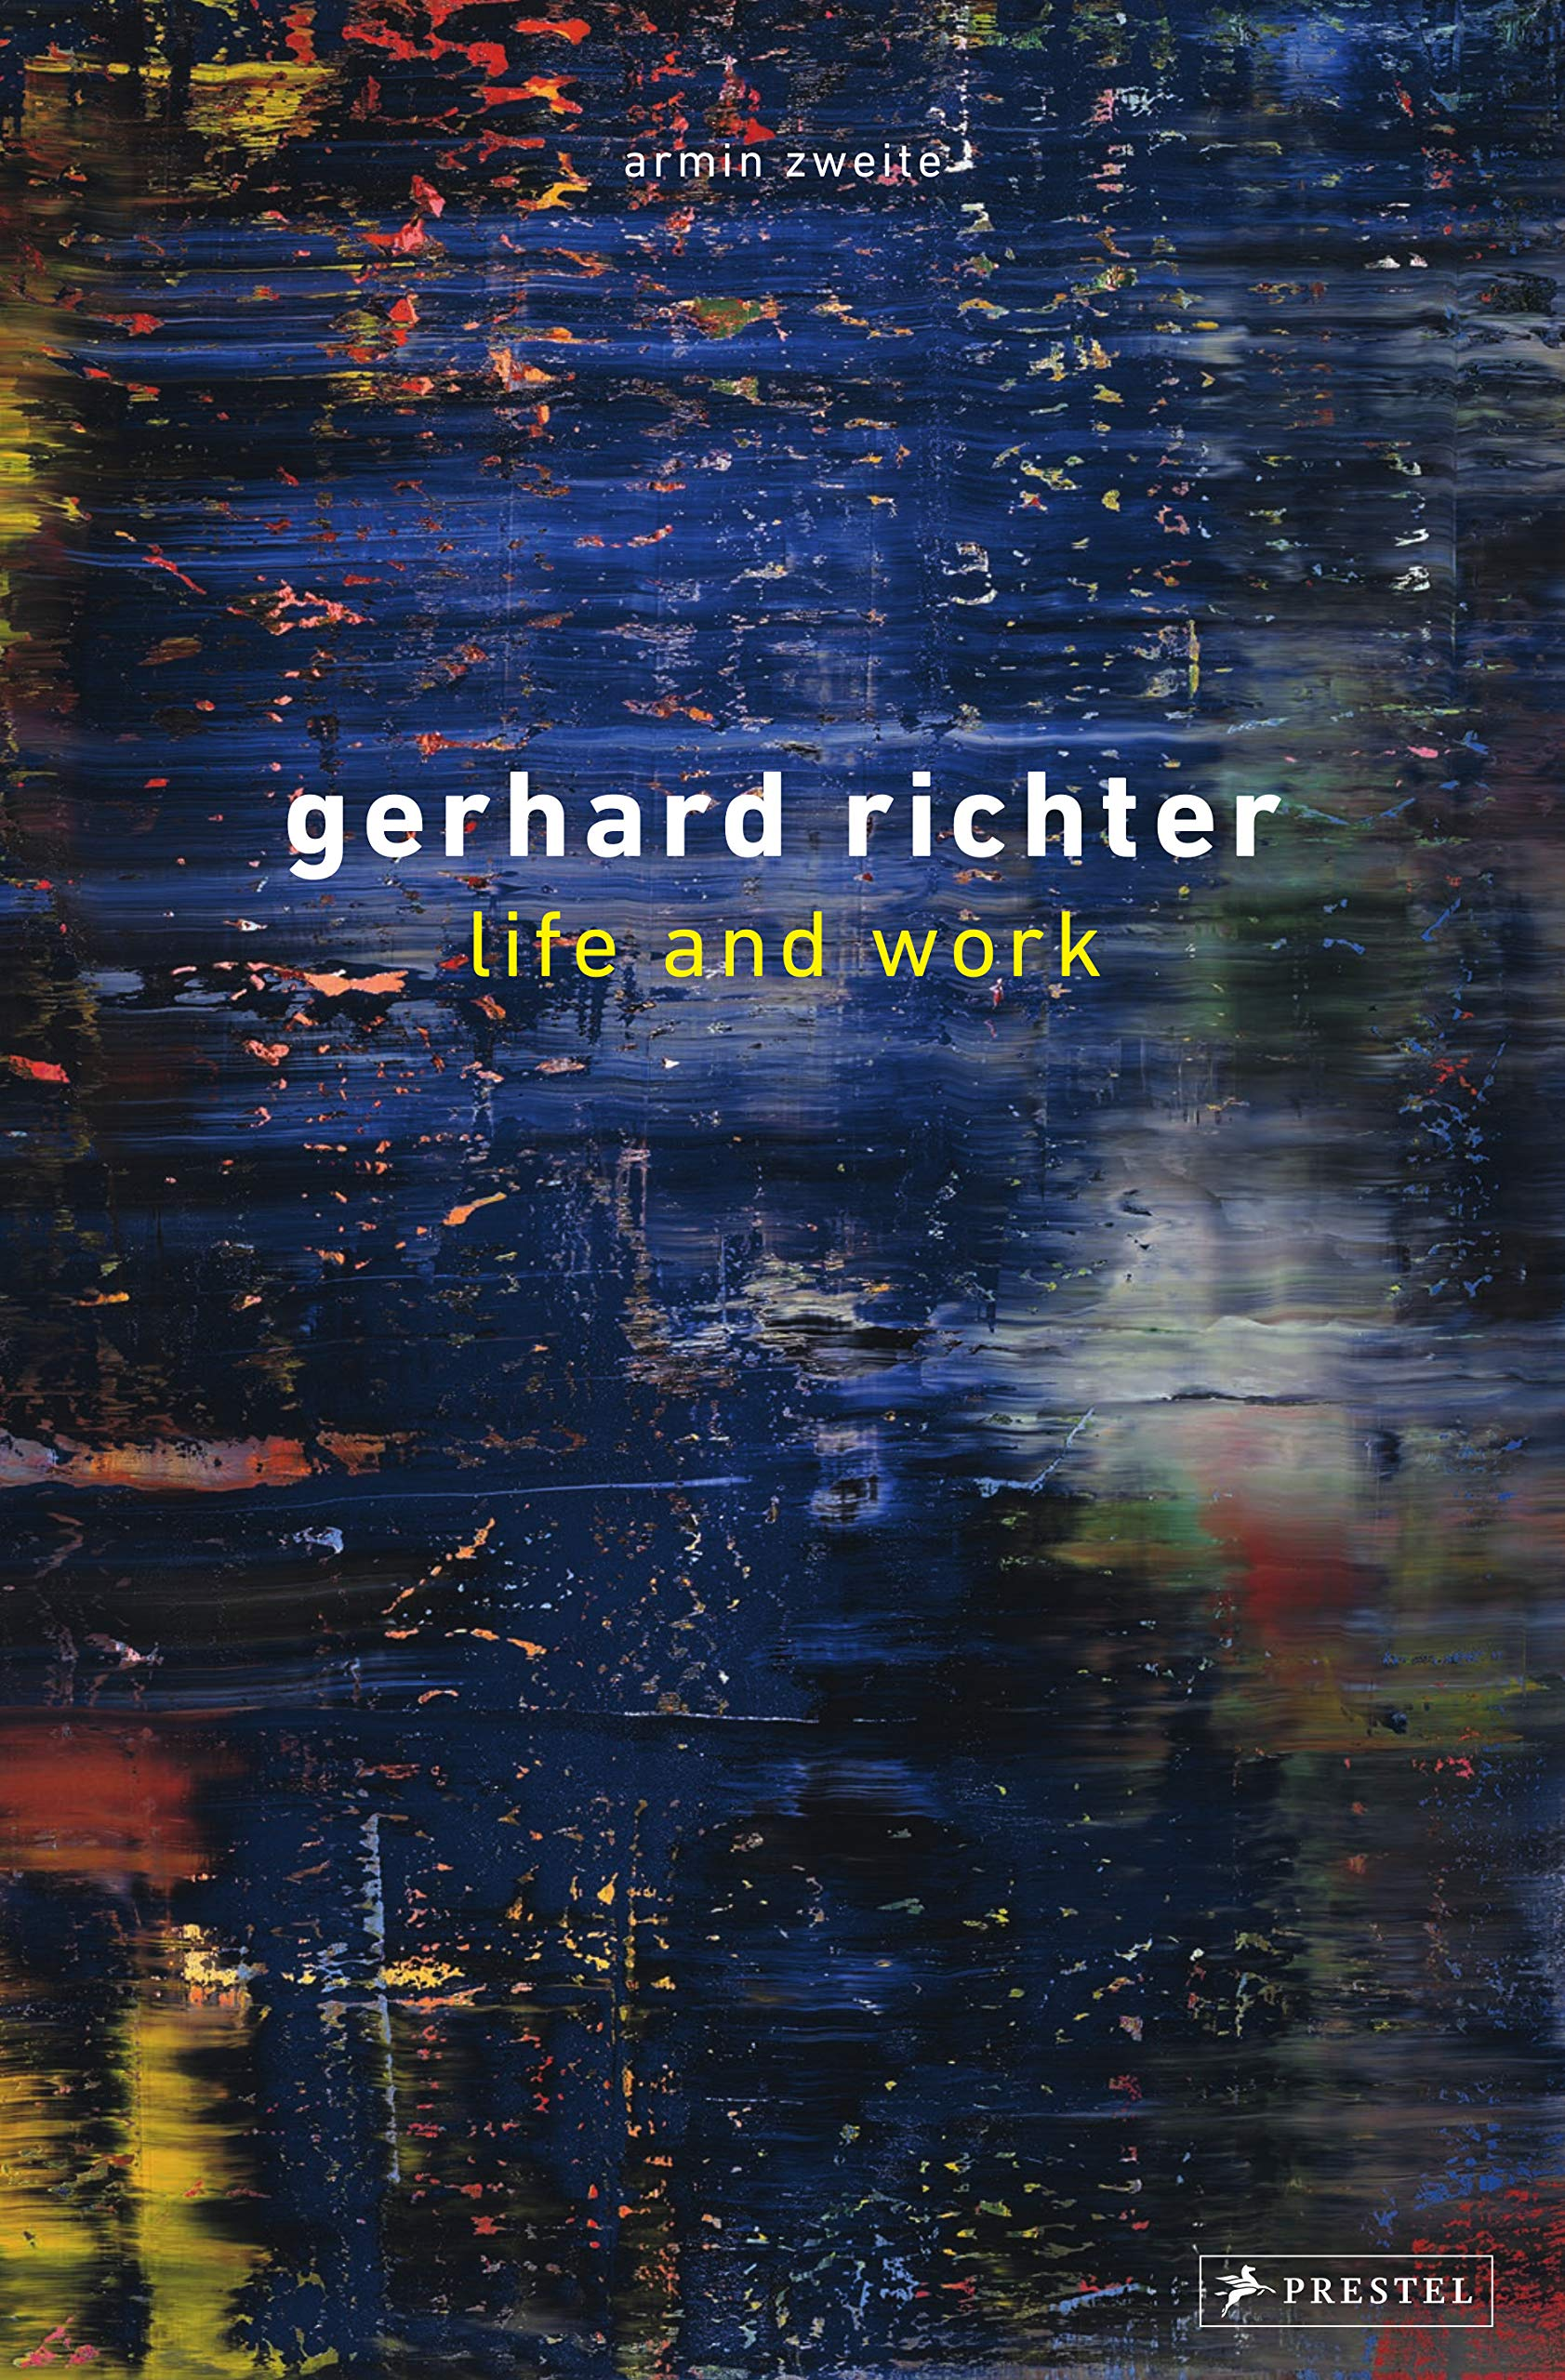 Gerhard Richter: Life and Work by Prestel